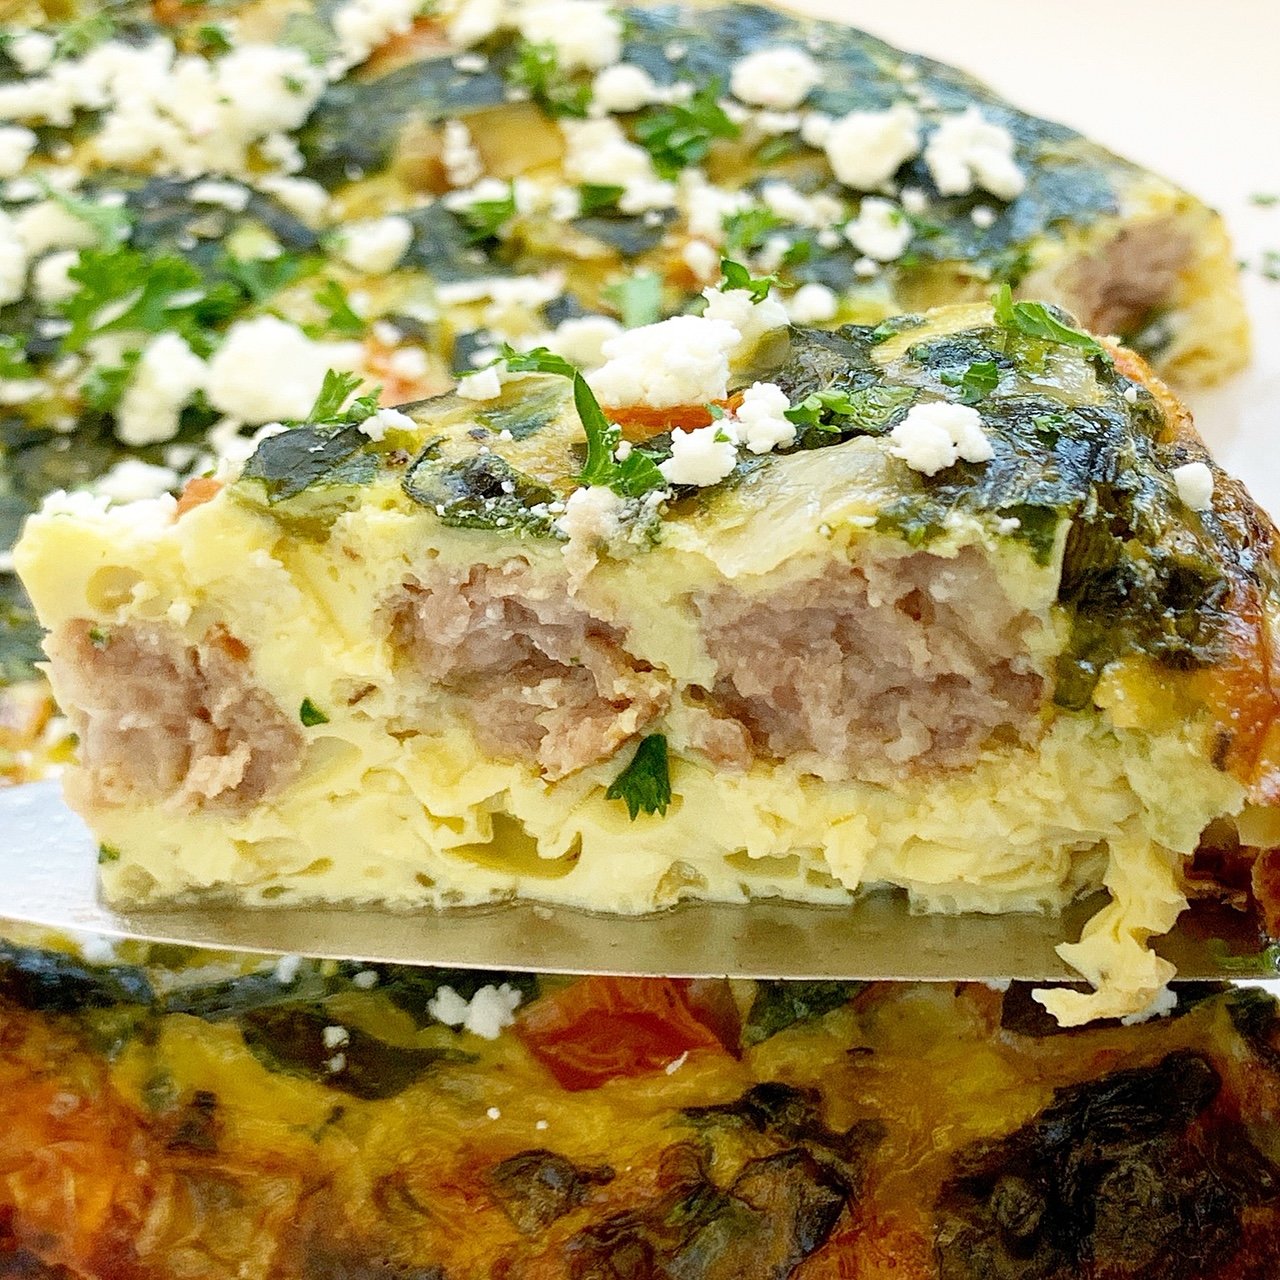 Breakfast sausage, spinach, and cheese cook together in this easy yet flavorful breakfast casserole. Make this healthy, low-carb breakfast in your slow cooker or Instant Pot.